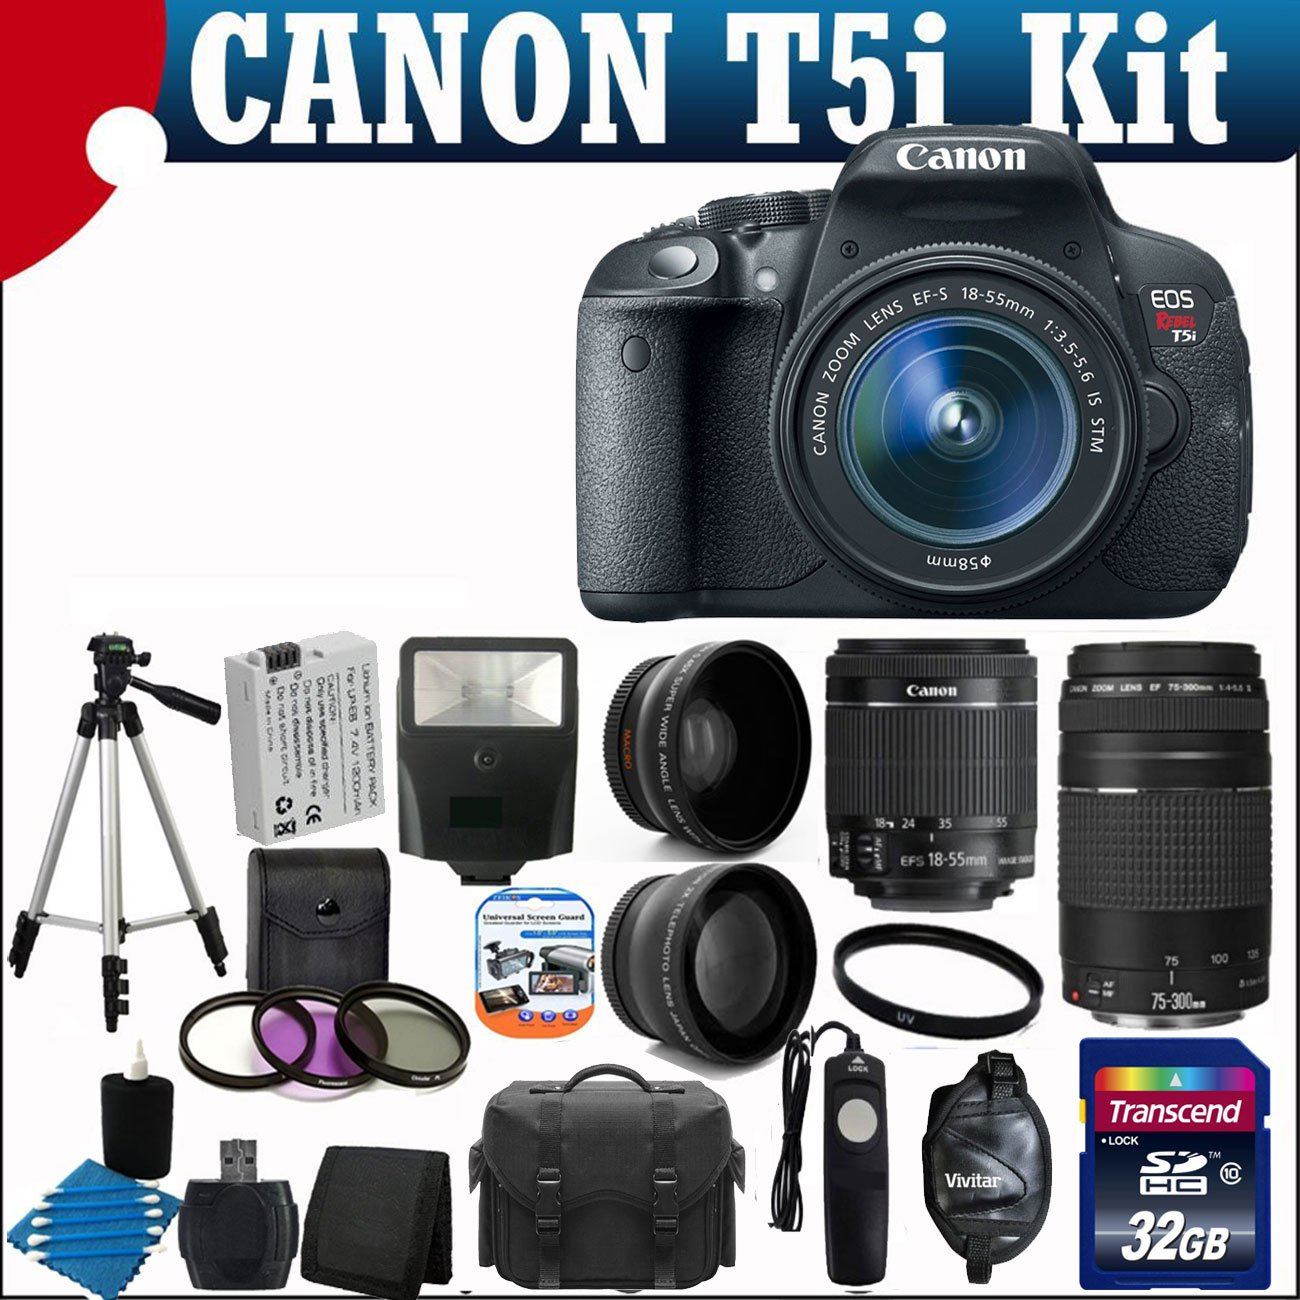 Canon EOS Rebel T5i 18.0 MP CMOS Digital Camera with EF-S 18-55mm f/3.5-5.6 IS STM Zoom Lens + EF 75-300mm f/4-5.6 III Telephoto Zoom Lens + 58mm 2x Professional Lens +High Definition 58mm Wide Angle Lens + Auto Flash + Spare LP-E8 Battery + Uv Filter Kit